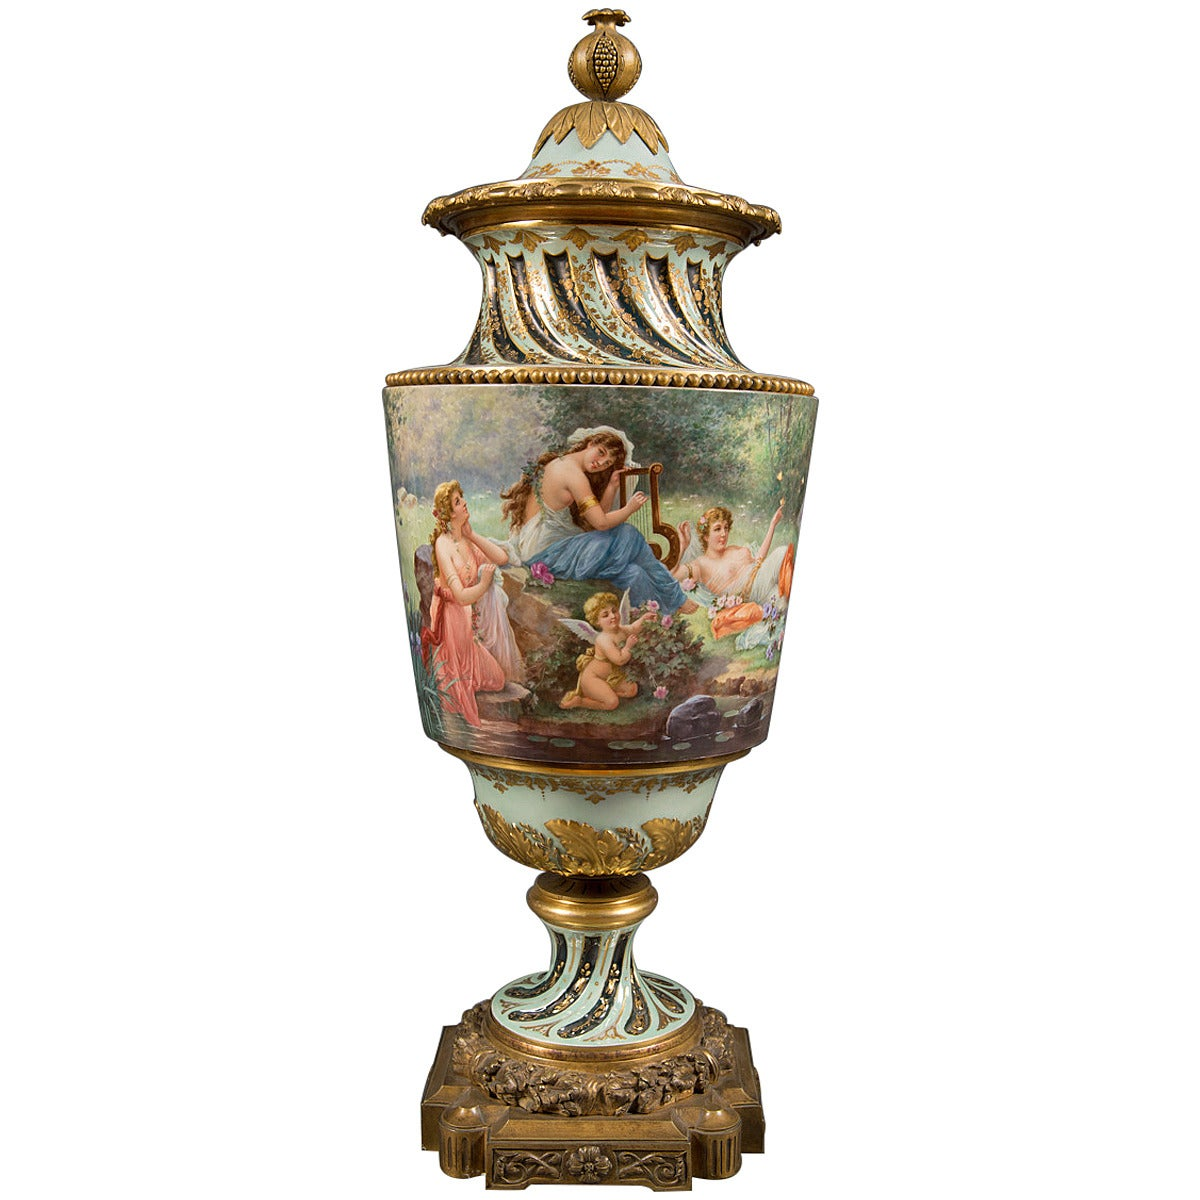 Very Fine Austrian Antique Royal Vienna Bronze Mounted Lidded Vase, circa 1890 For Sale